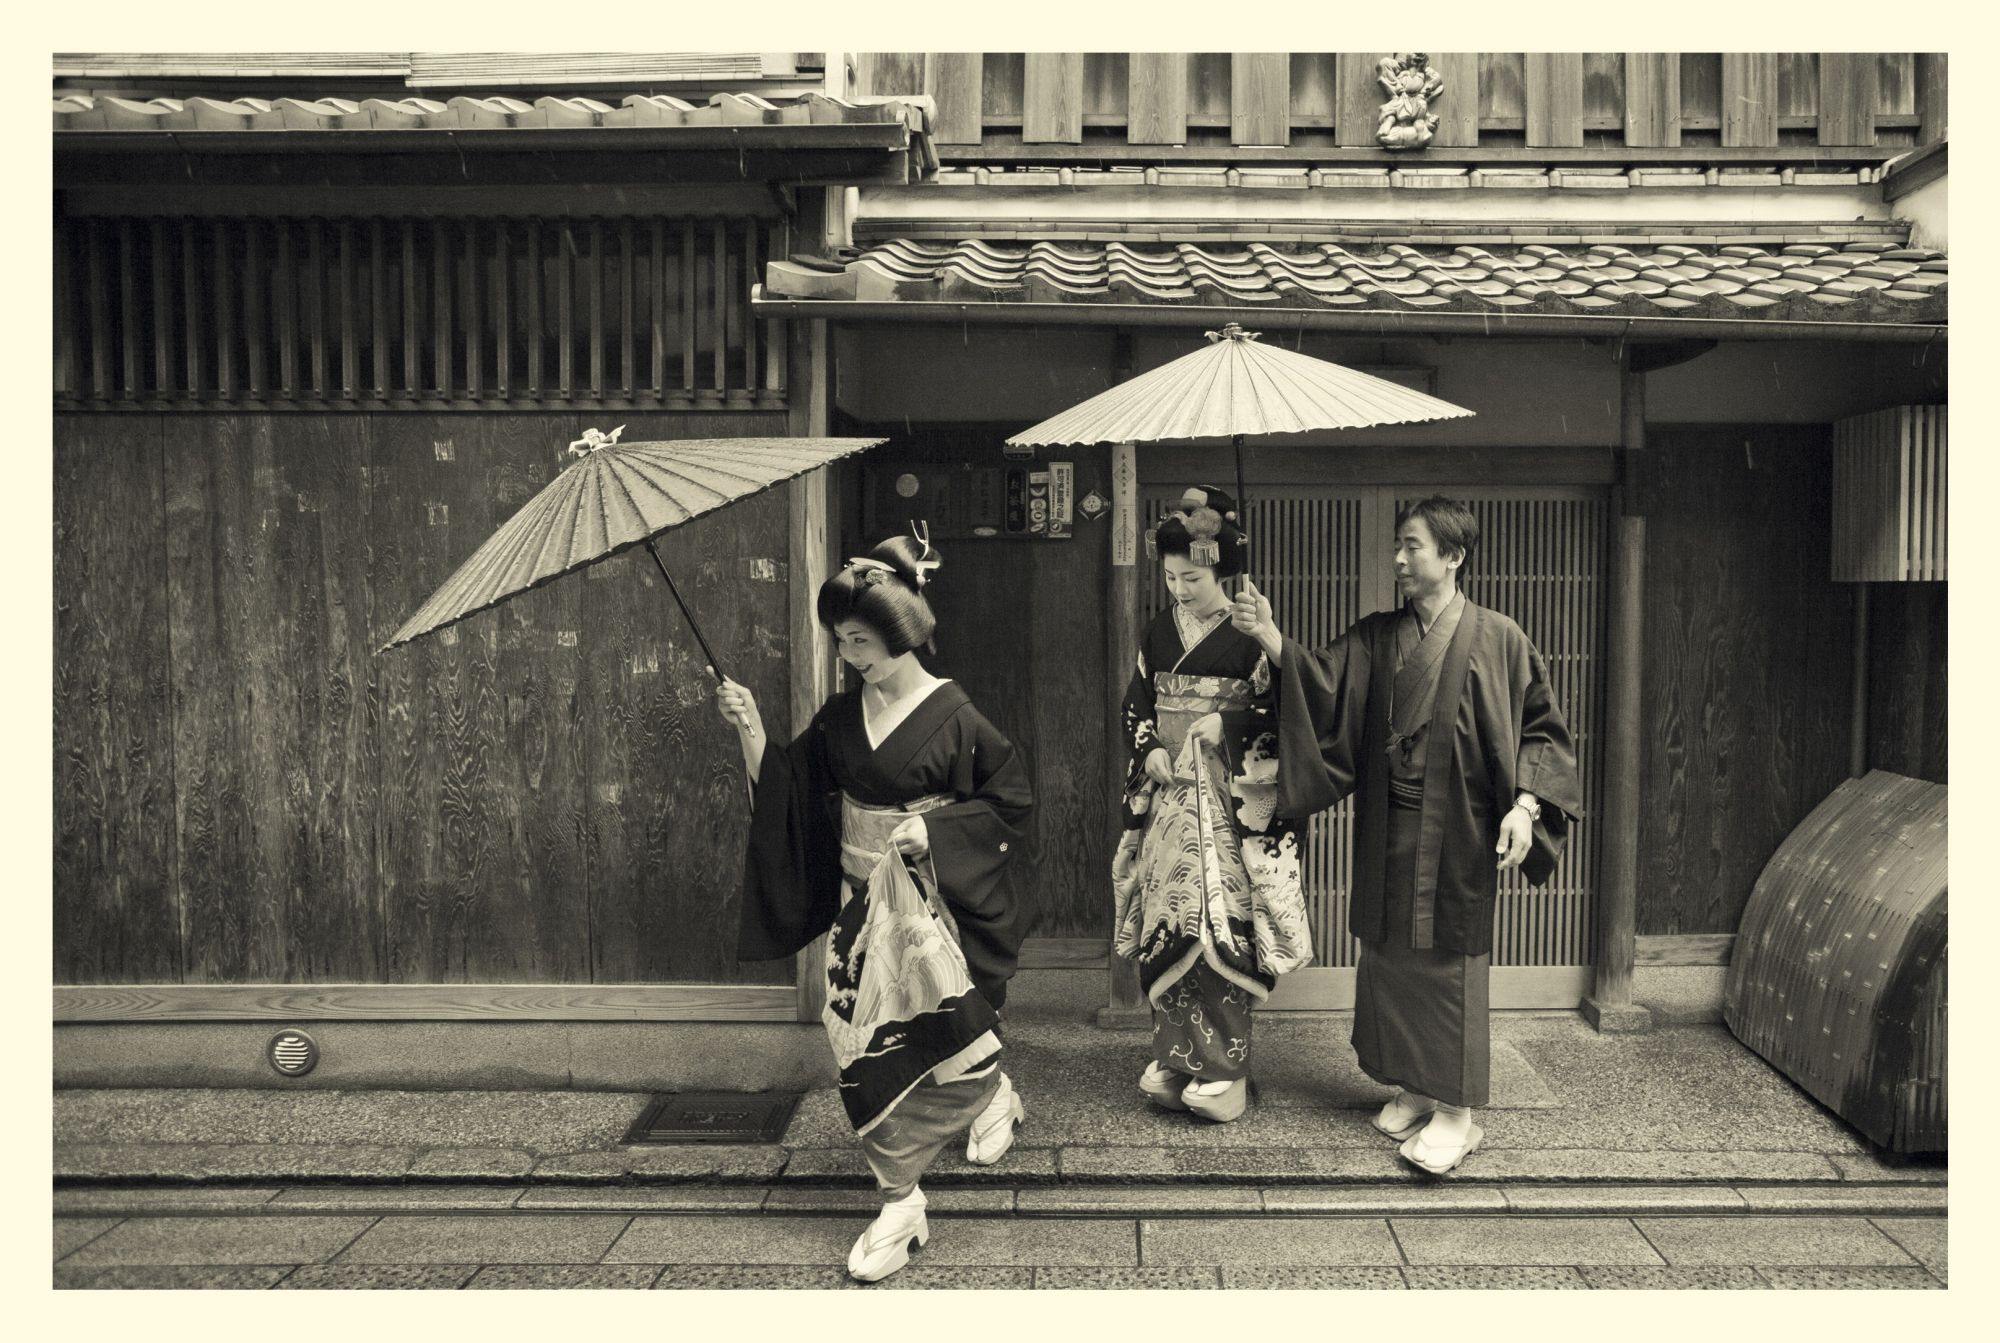 Singaporean Photographer Russel Wong Gets Insider Access into the Private World of Geishas in Kyoto